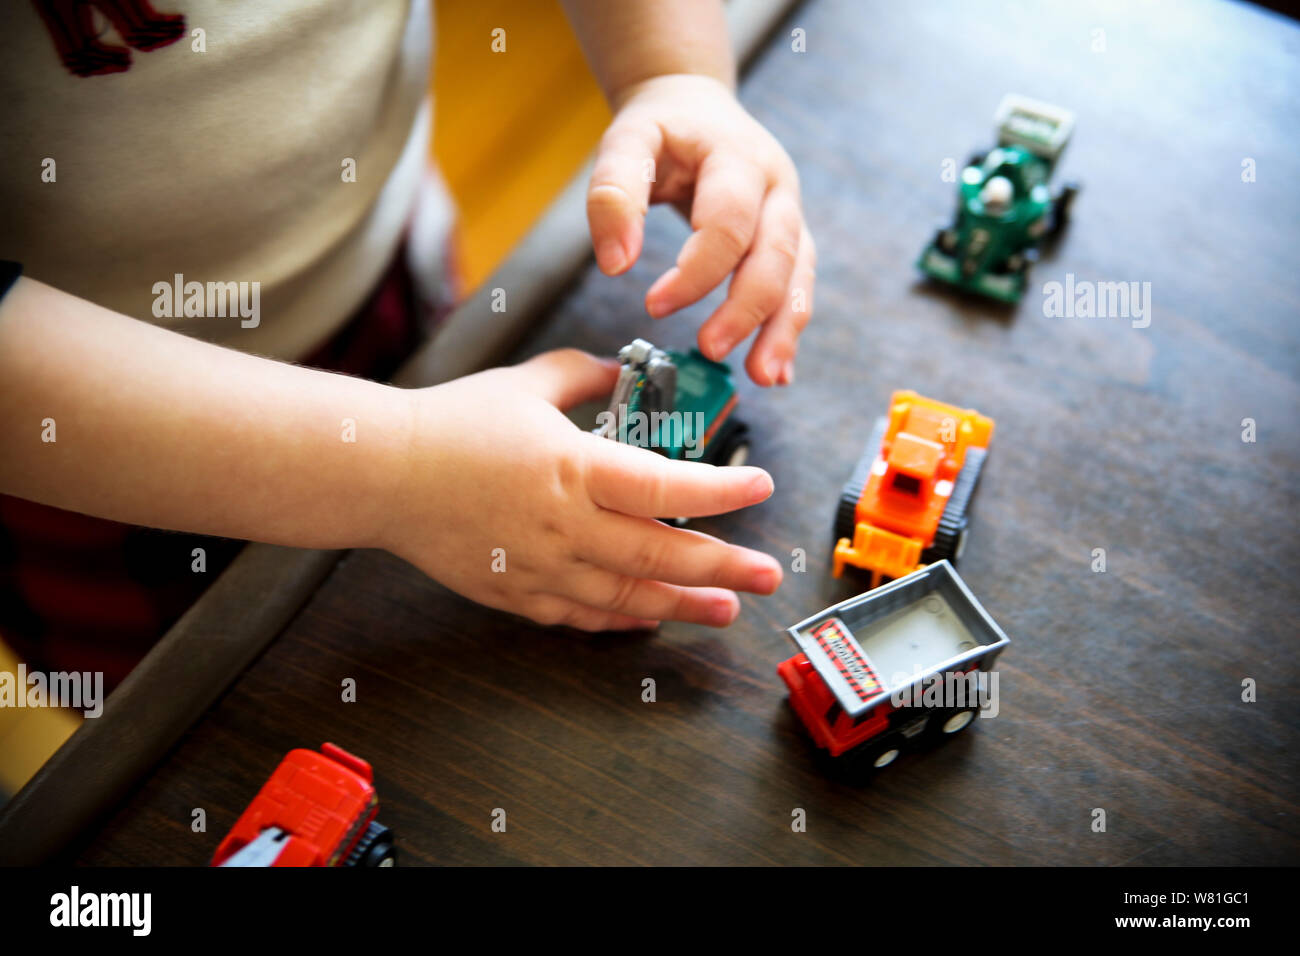 Young Boy Playing with Toy Trucks - Stock Photo